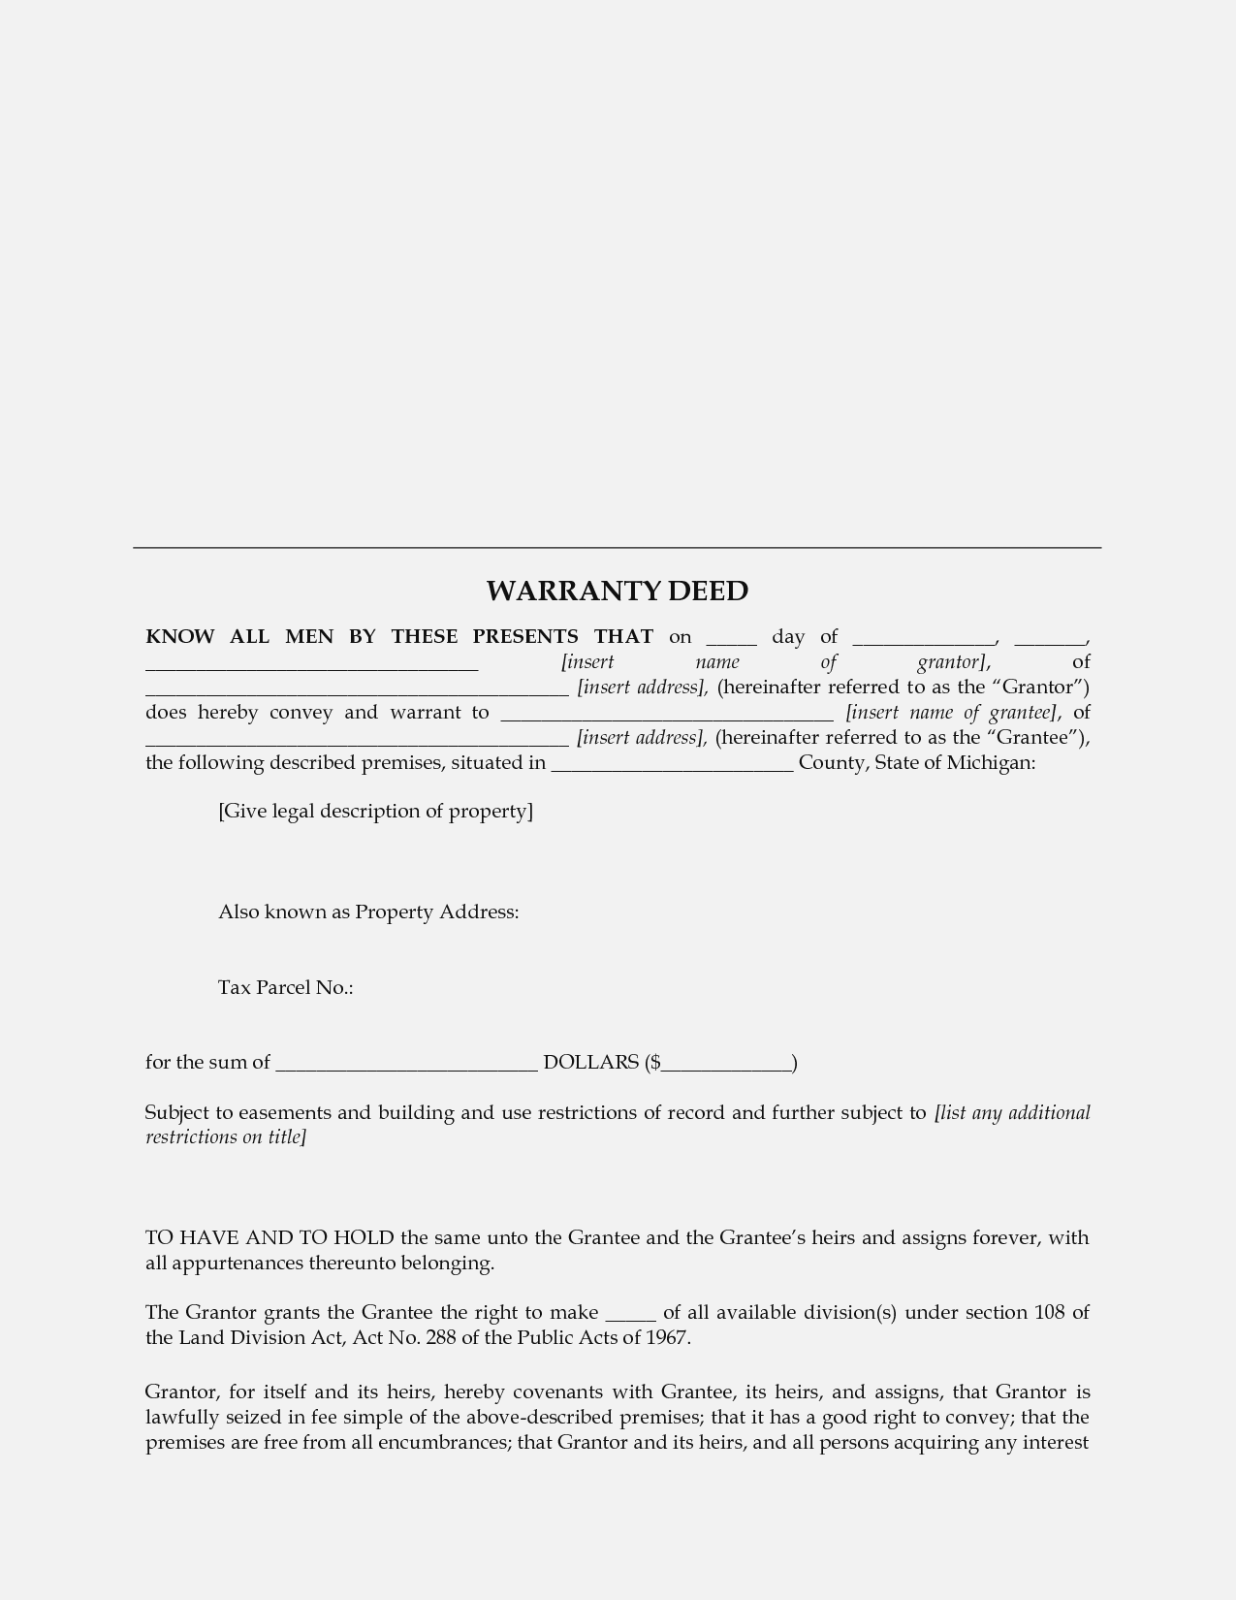 Warranty Deed Template Michigan